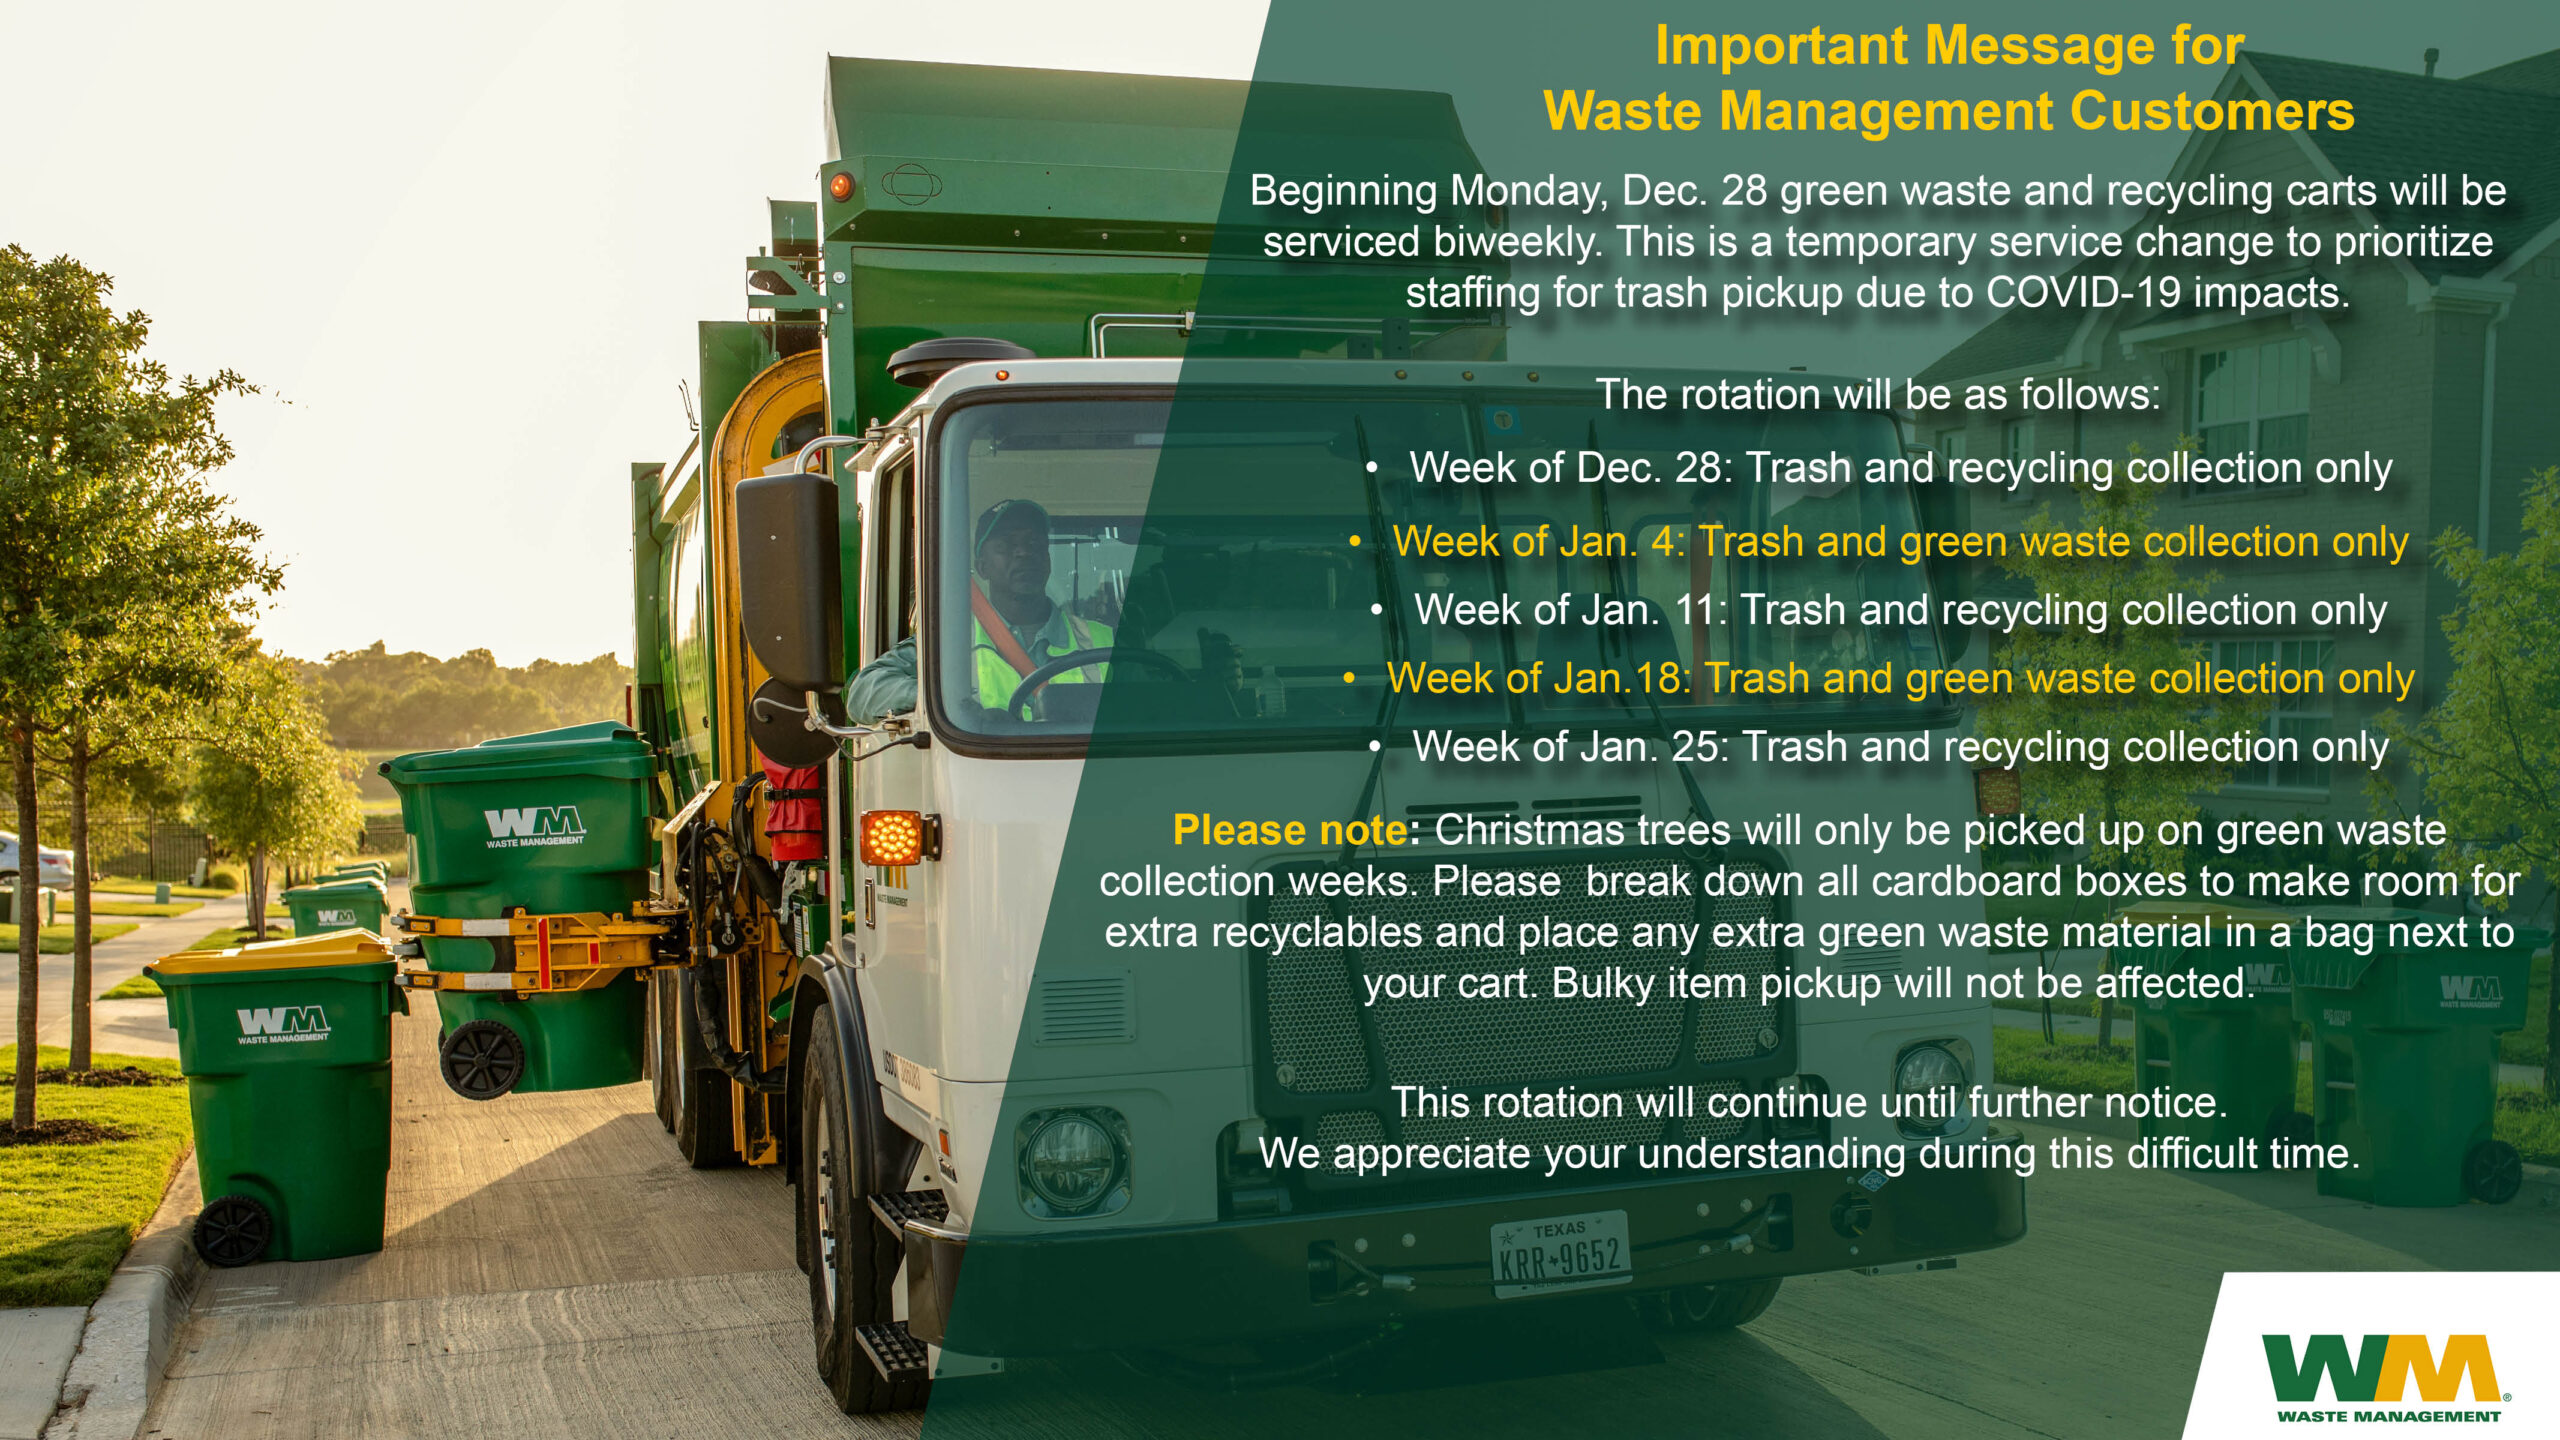 Green Waste Recycle Schedule Change - SG